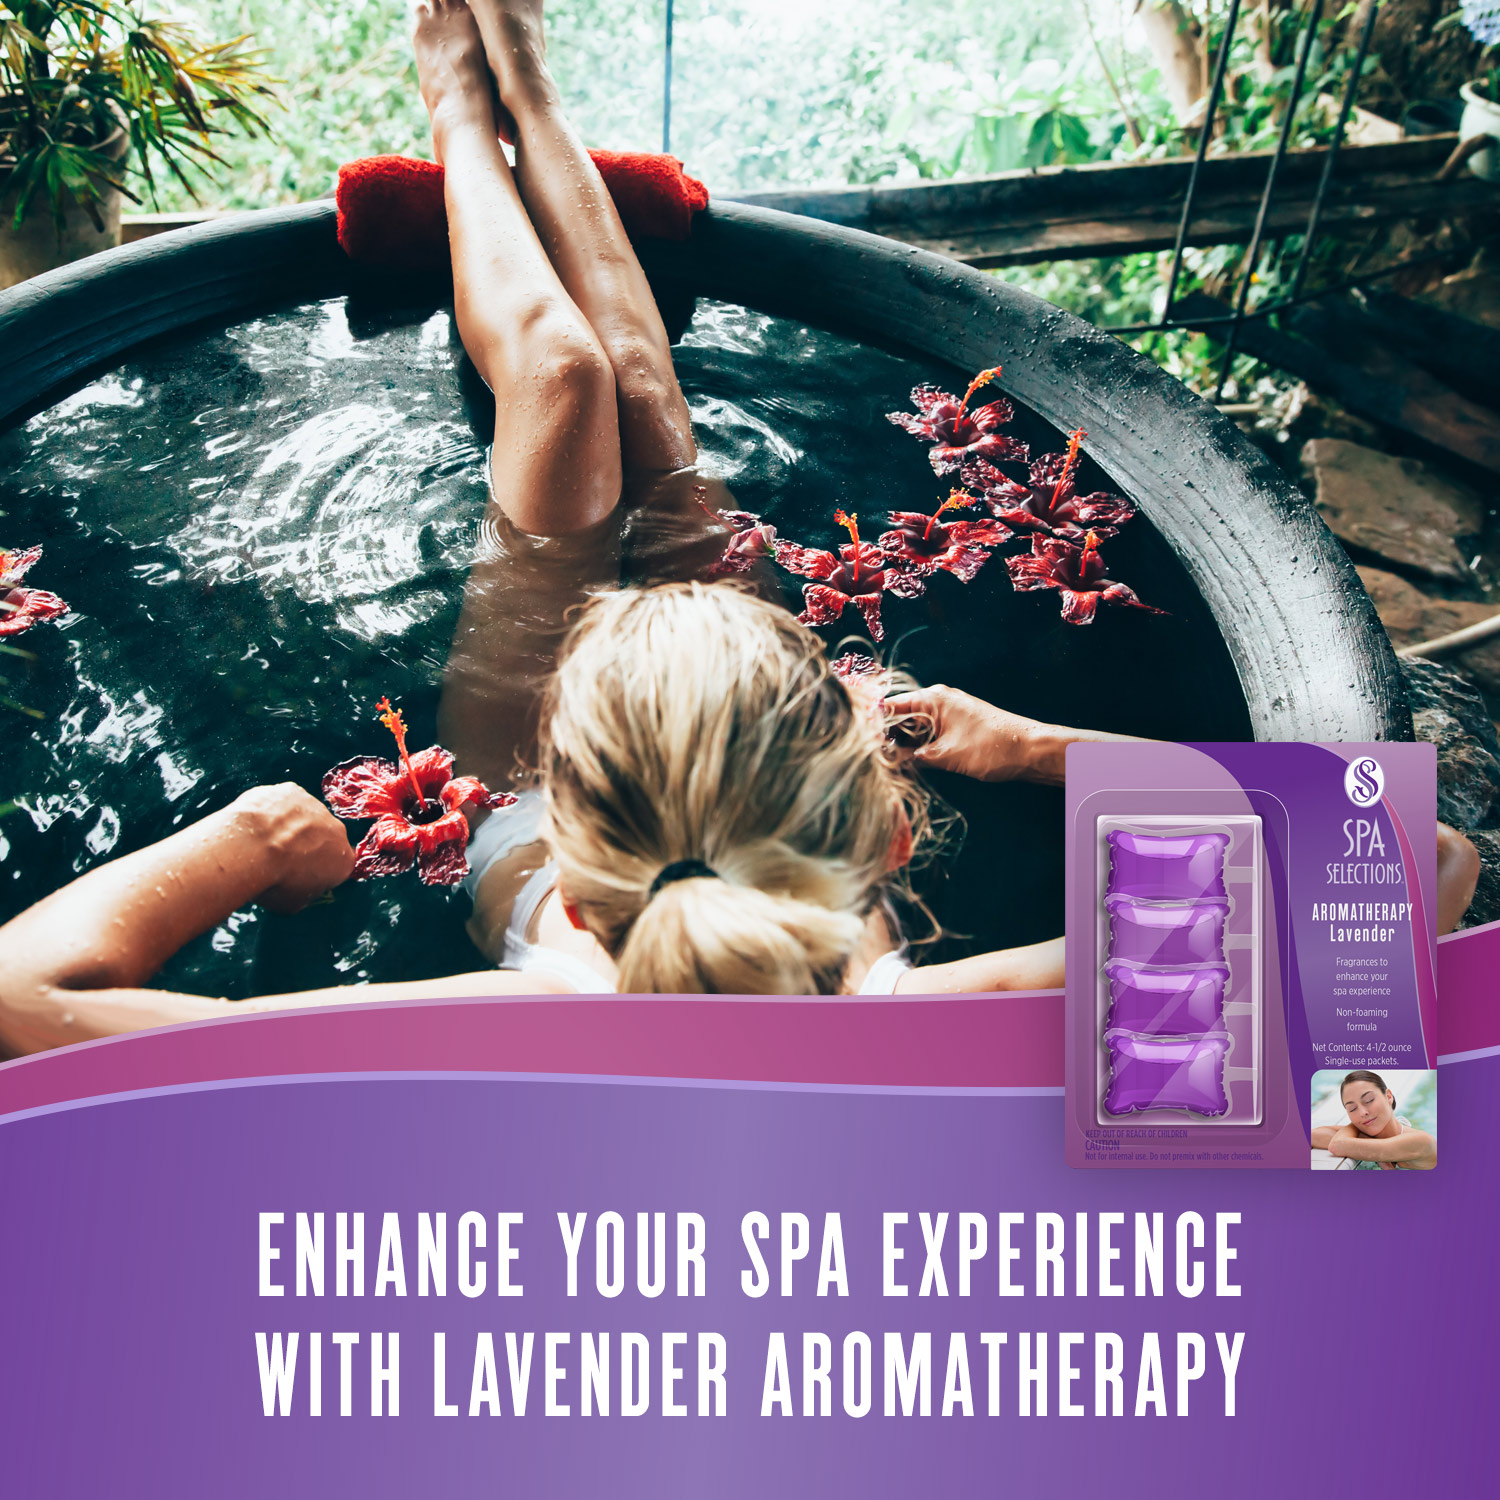 Woman enjoying hot tub overlooking a forest. Enhance your spa experience with lavender aromatherapy from Spa Selections.